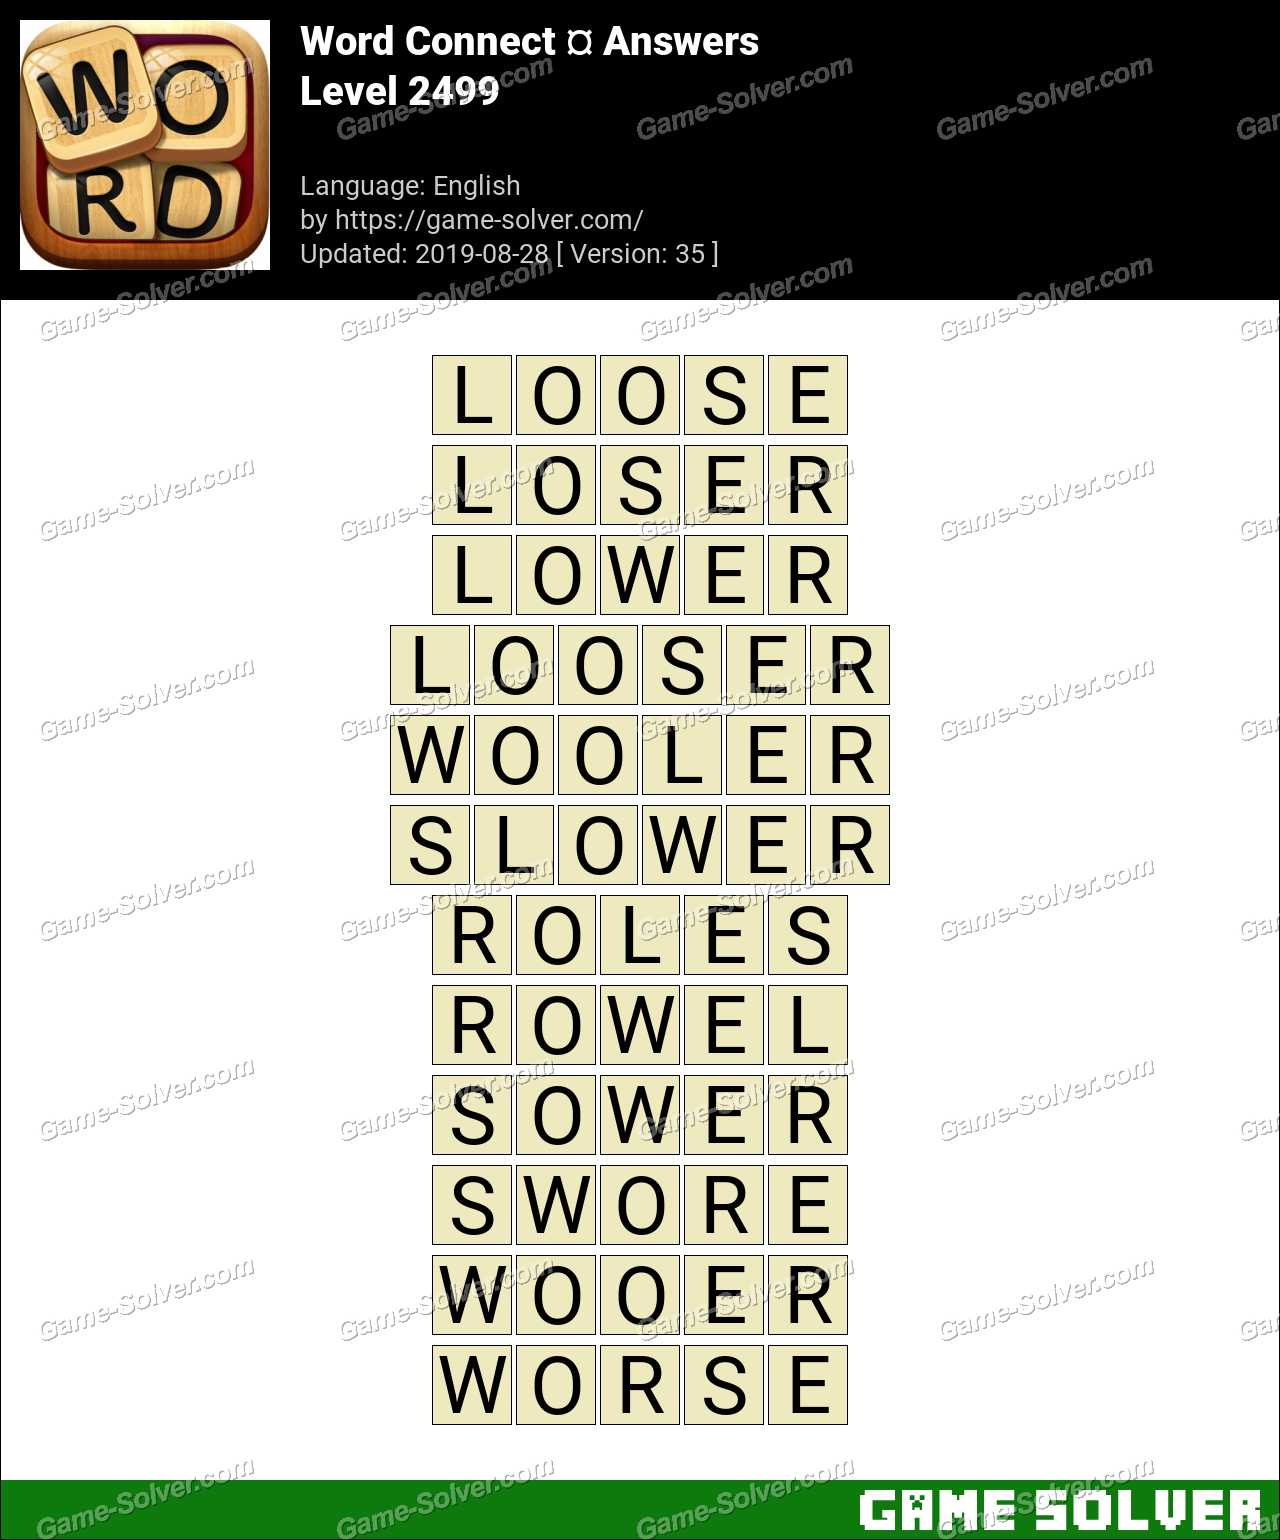 Word Connect Level 2499 Answers